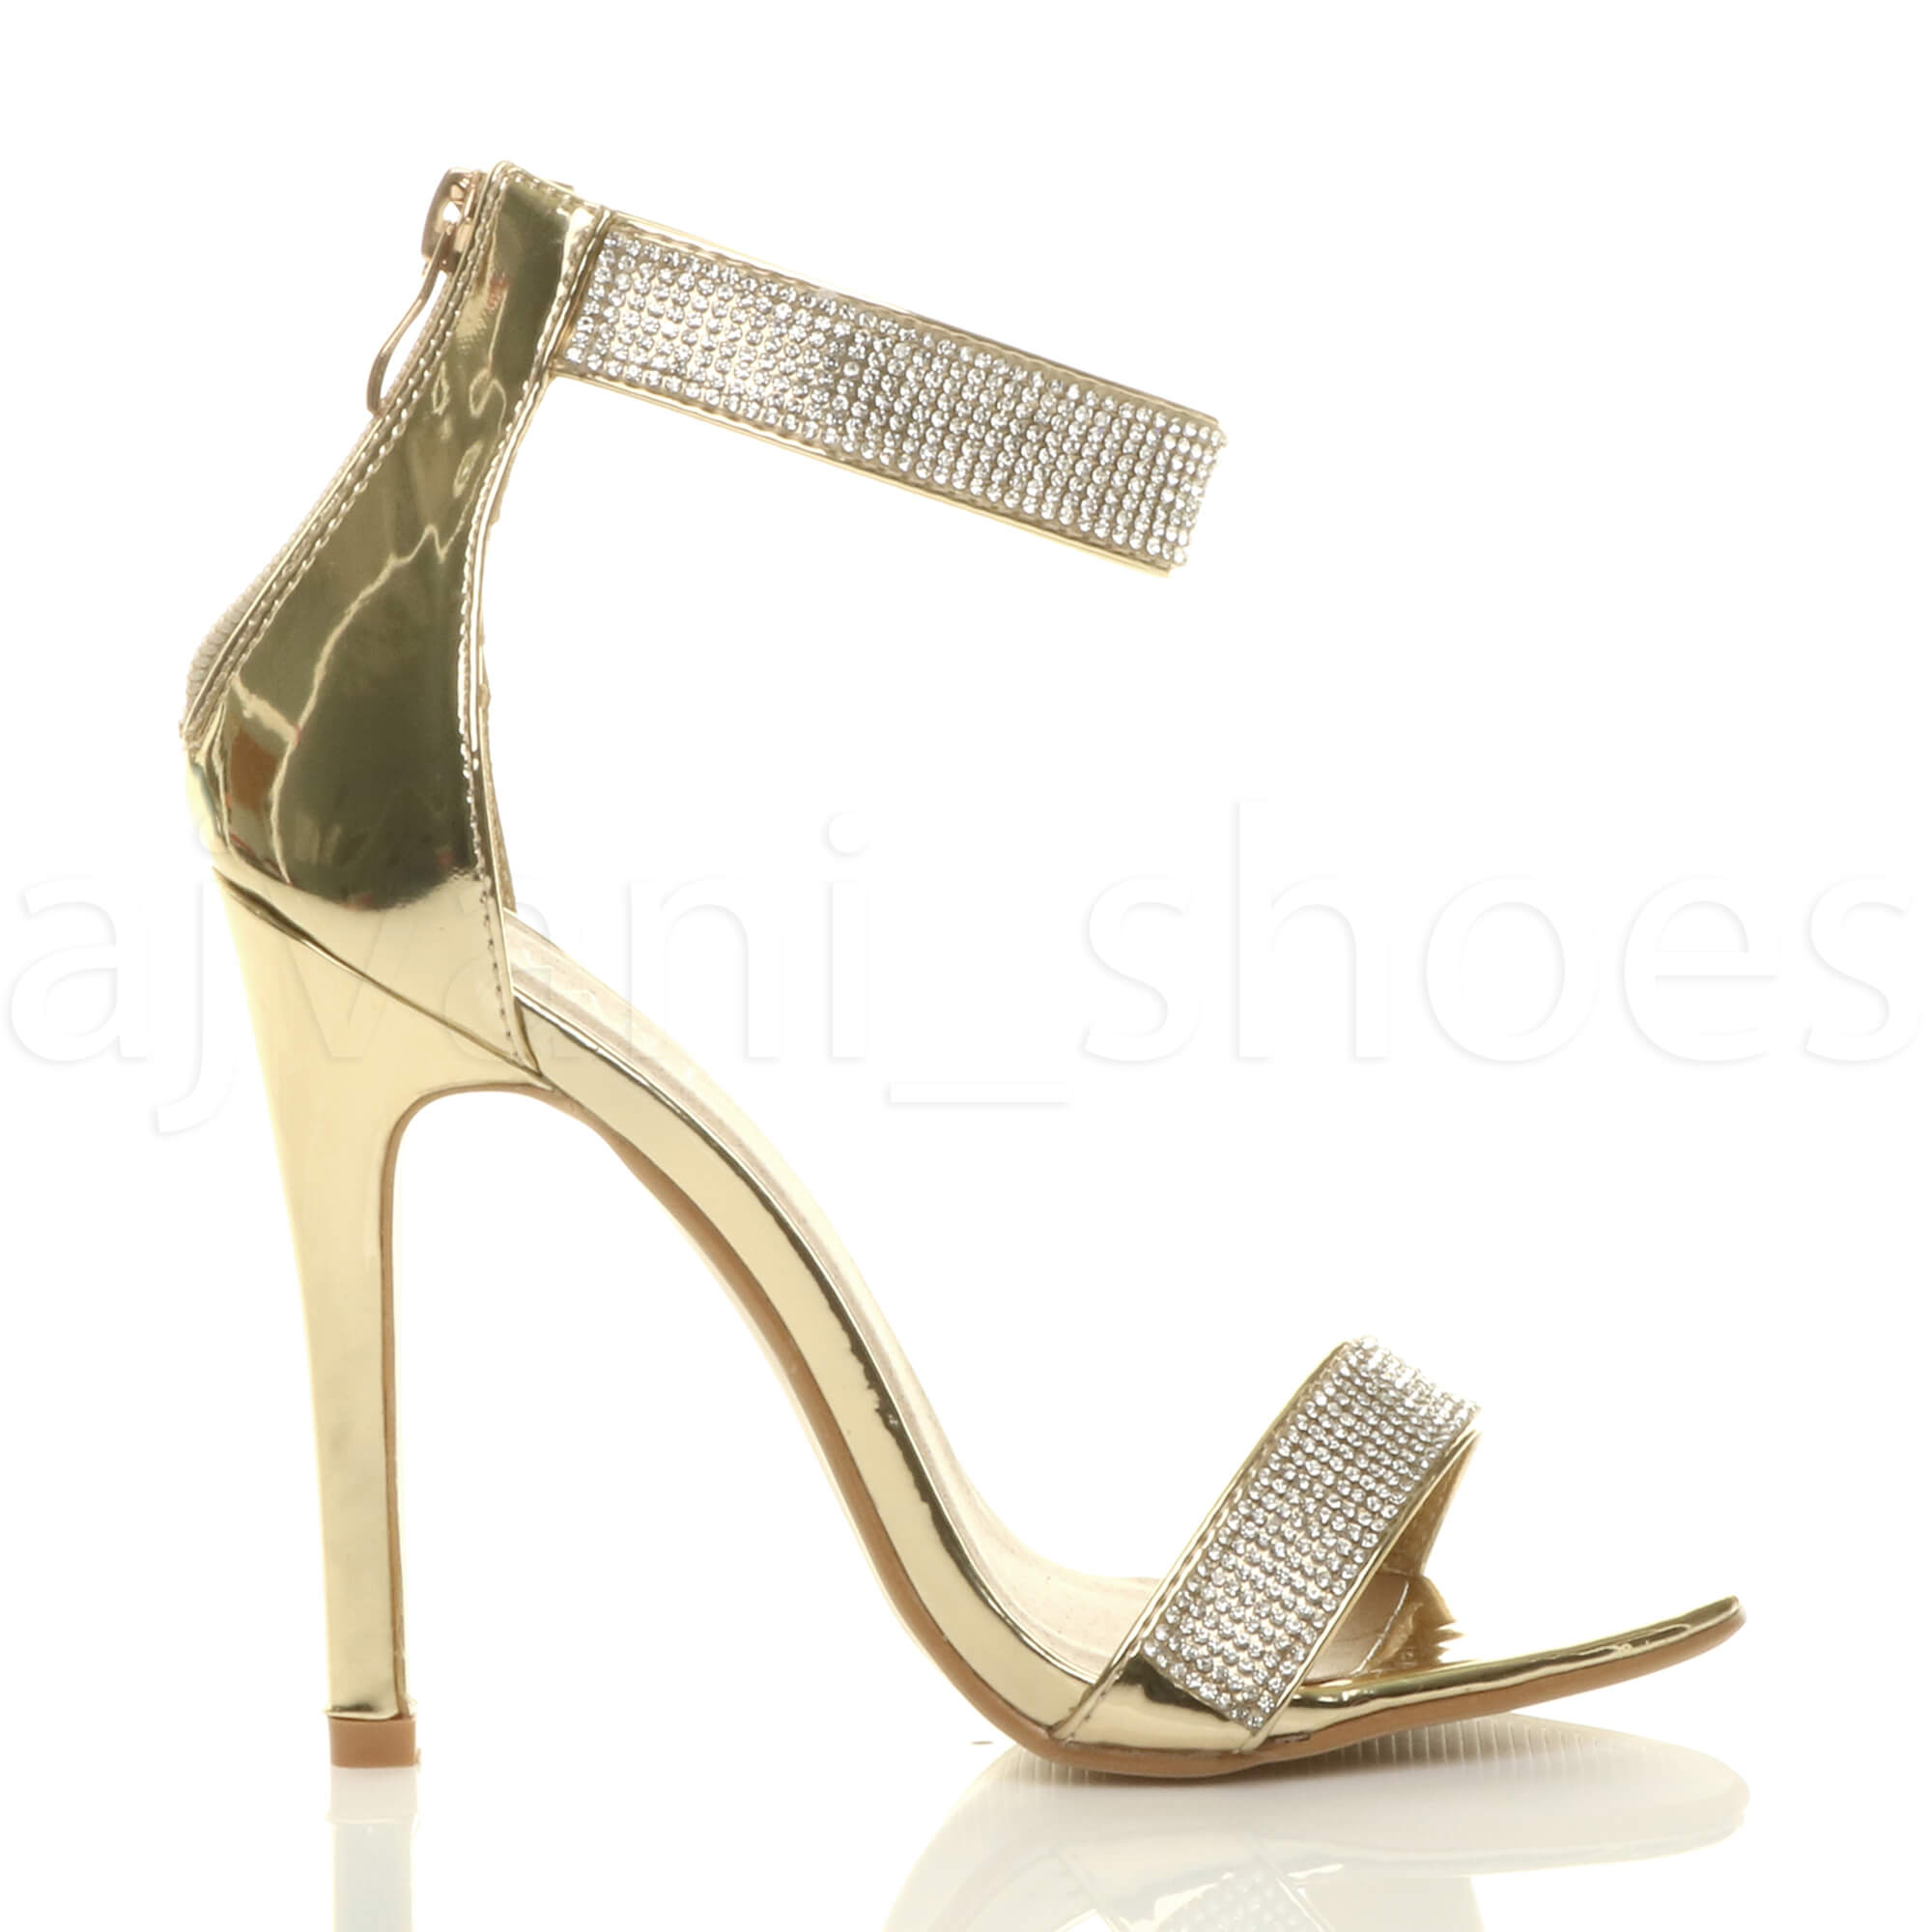 WOMENS-LADIES-HIGH-HEEL-STRAPPY-DIAMANTE-BARELY-THERE-SANDALS-EVENING-SHOES-SIZE